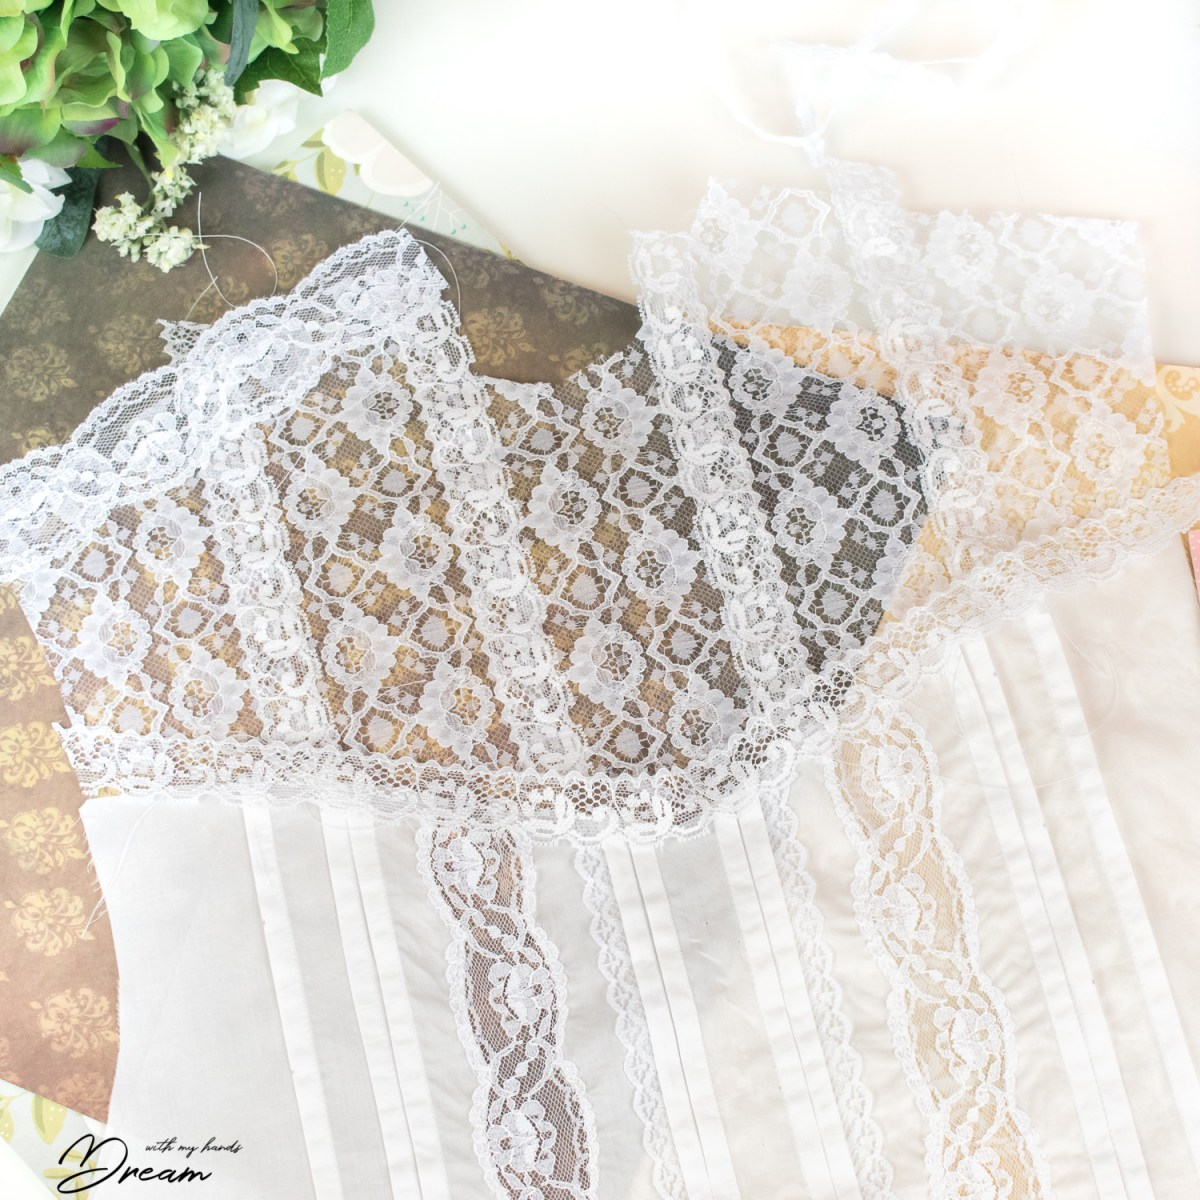 Lace insertions à la Edwardians